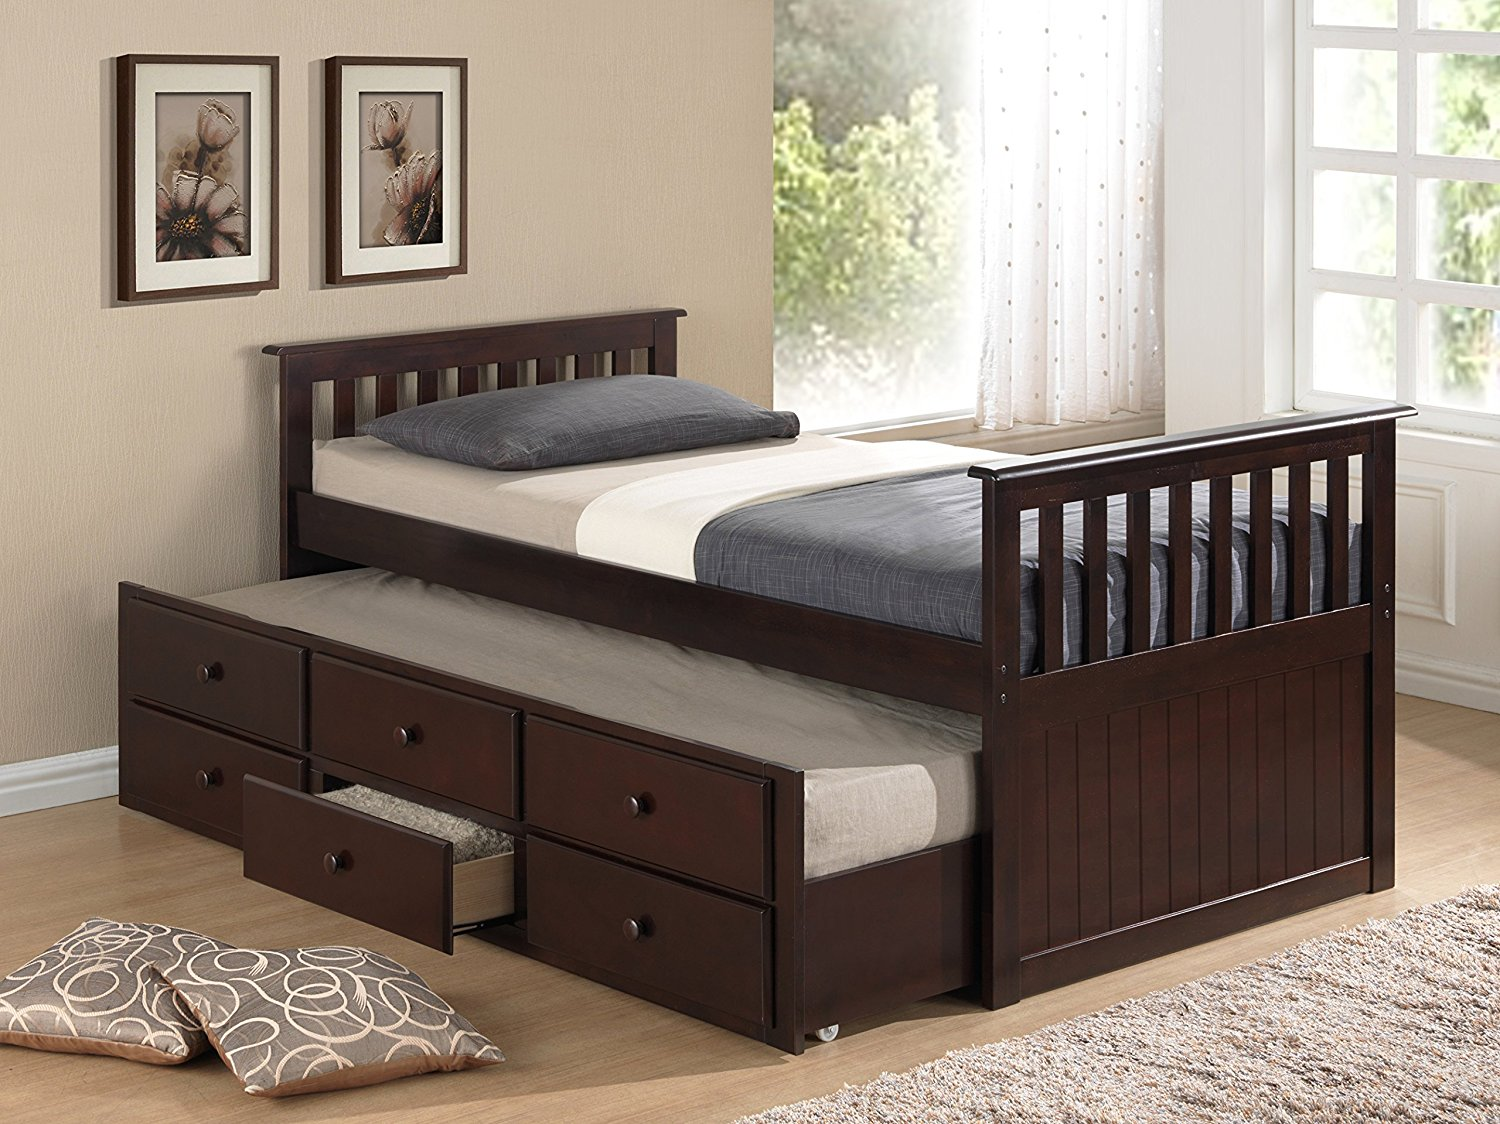 Image of: King Beds with Storage Drawer